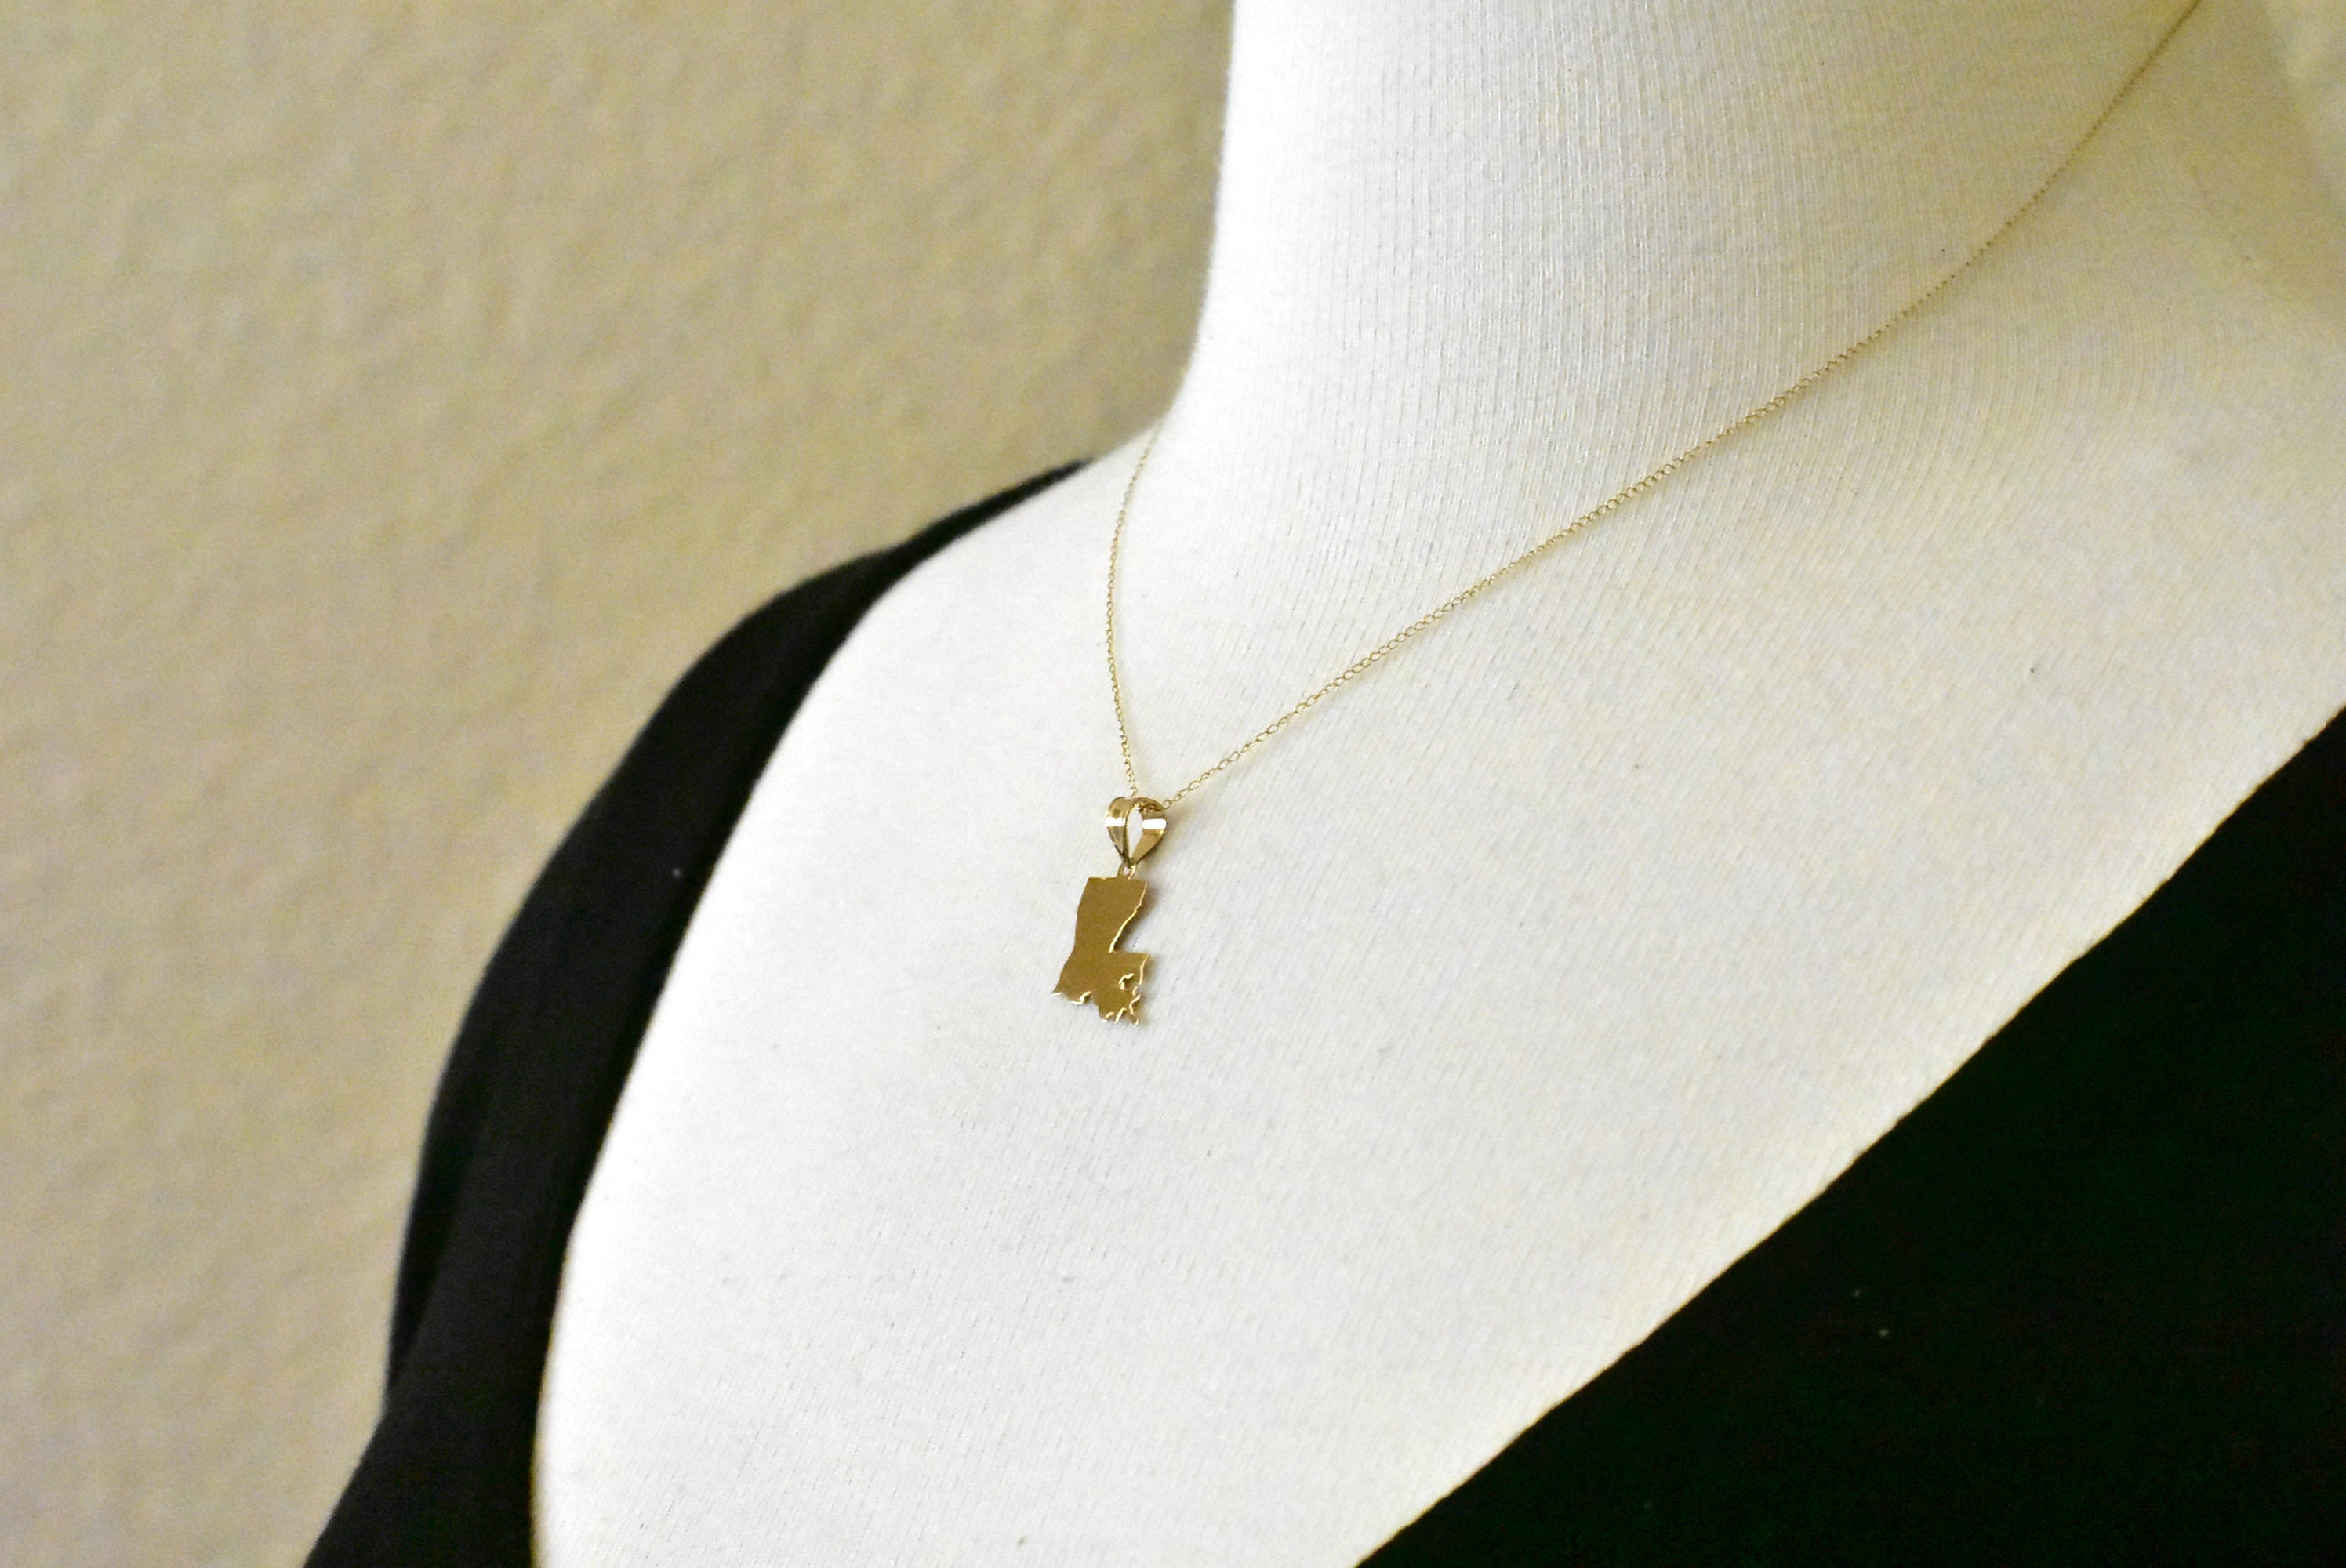 14K Gold or Sterling Silver Louisiana LA State Map Pendant Charm Personalized Monogram